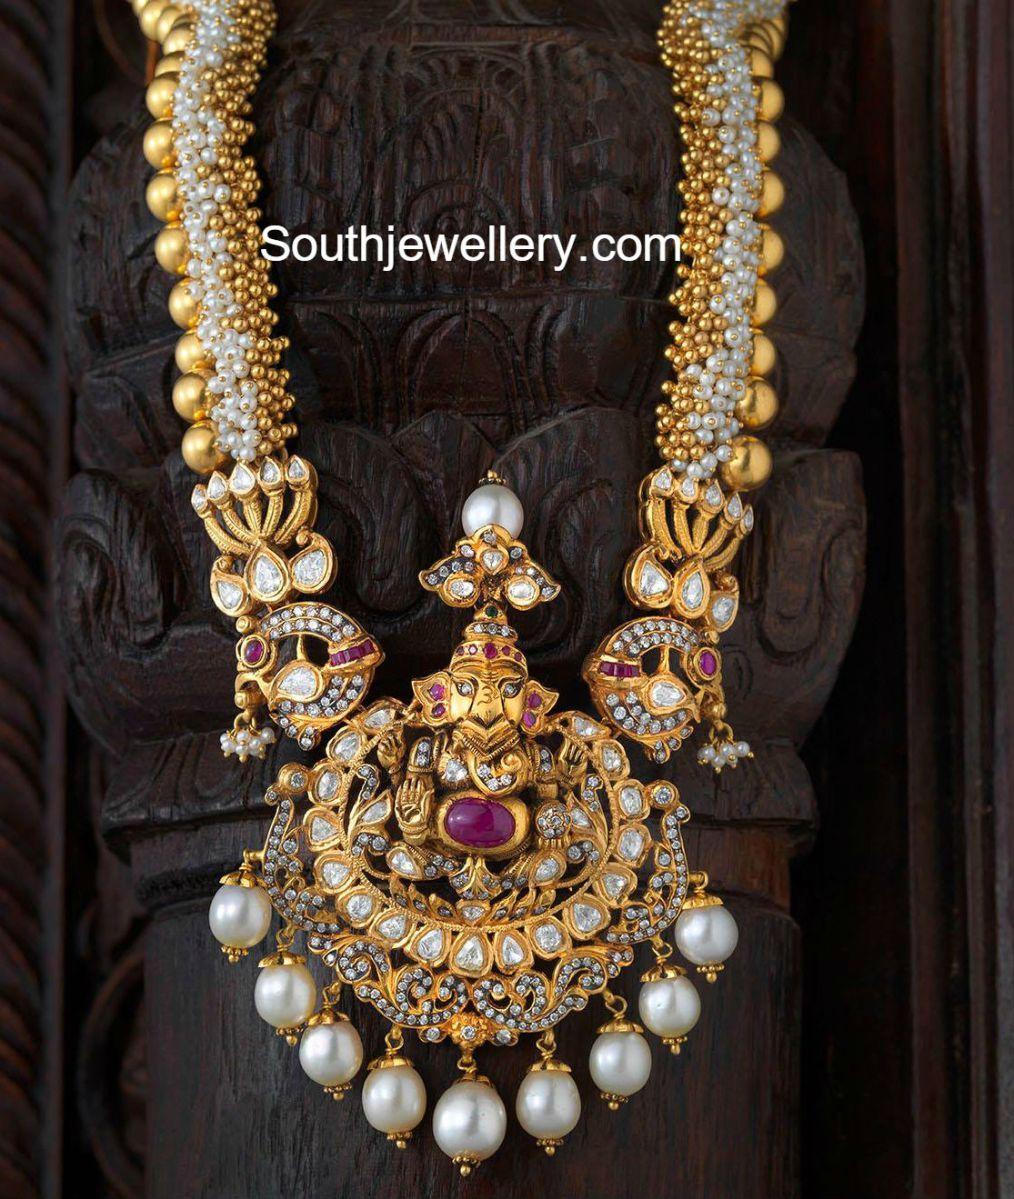 Antique necklace with ganesh pendant temple jewellery pinterest antique necklace with ganesh pendant aloadofball Image collections